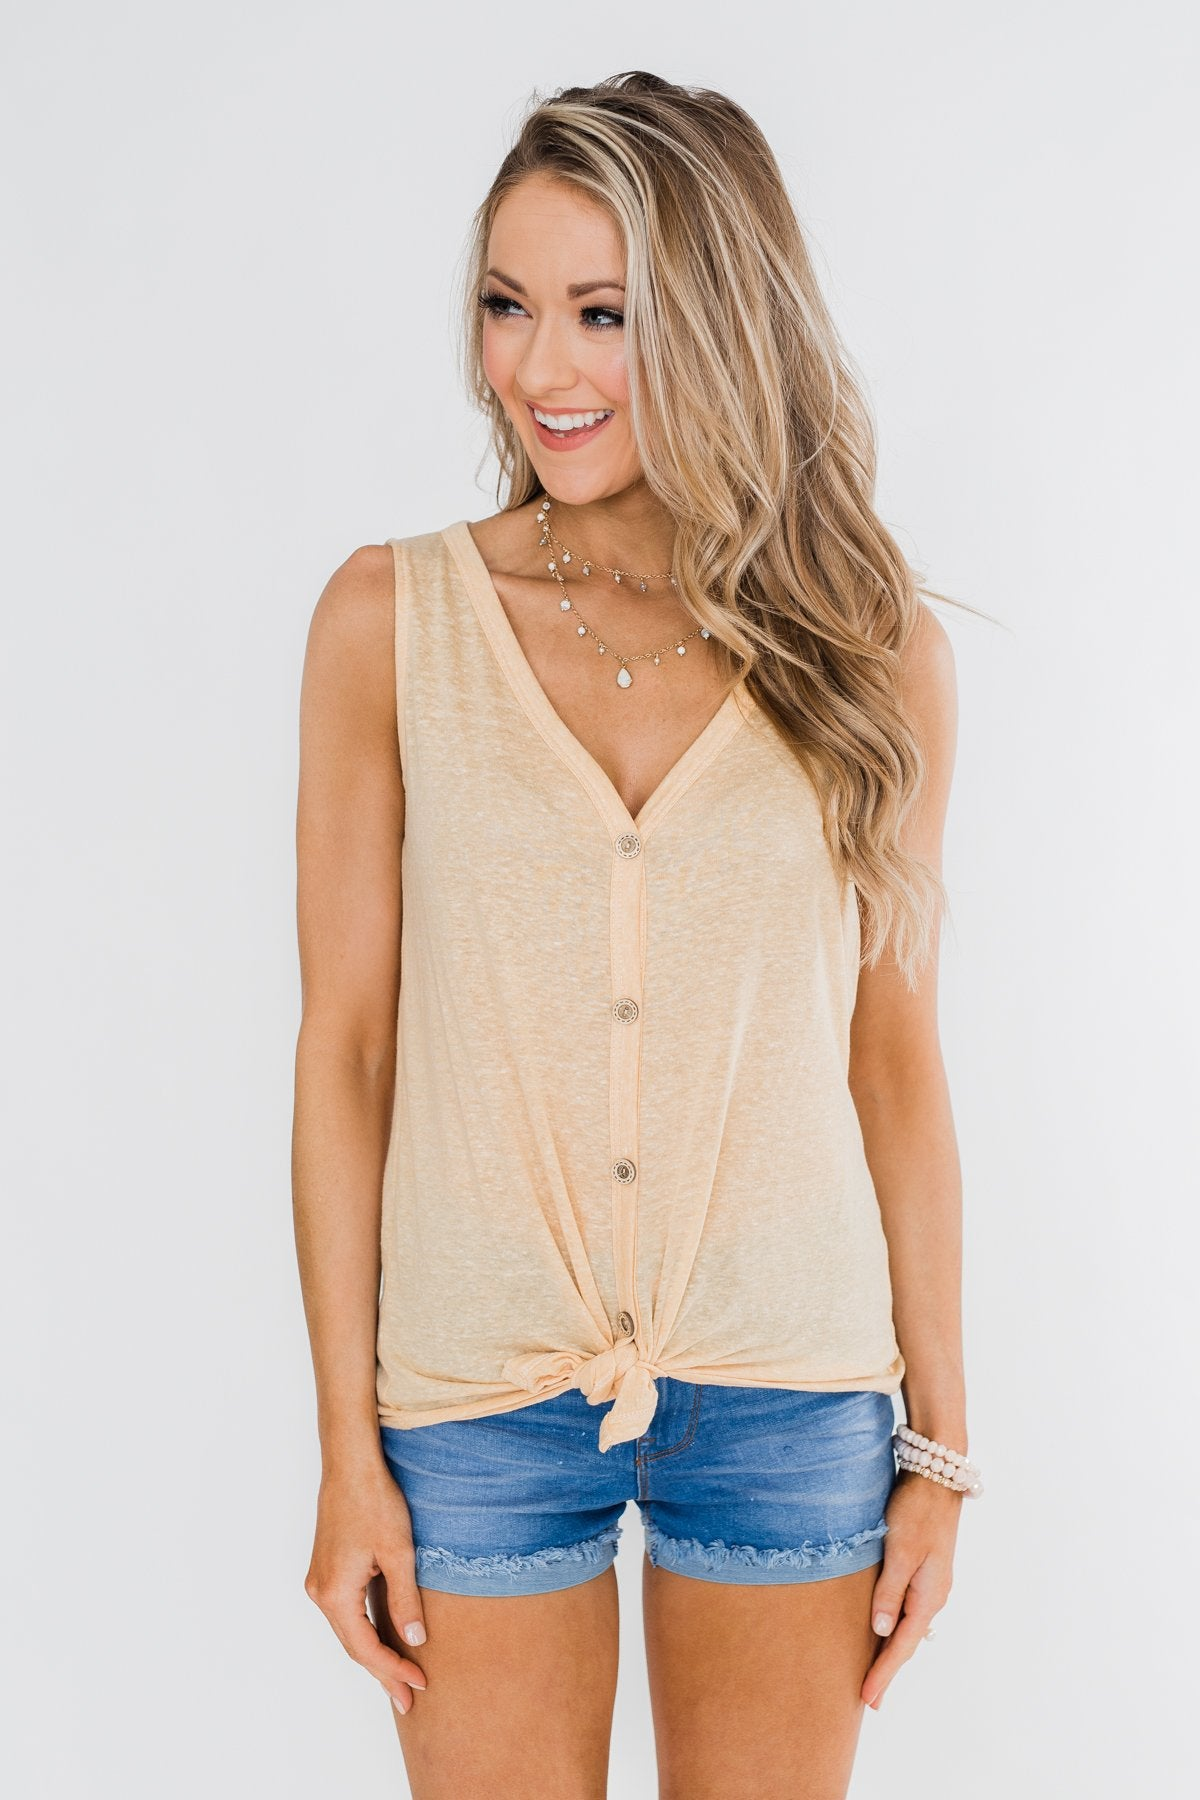 Everyday Button Tie Tank Top- Dusty Yellow